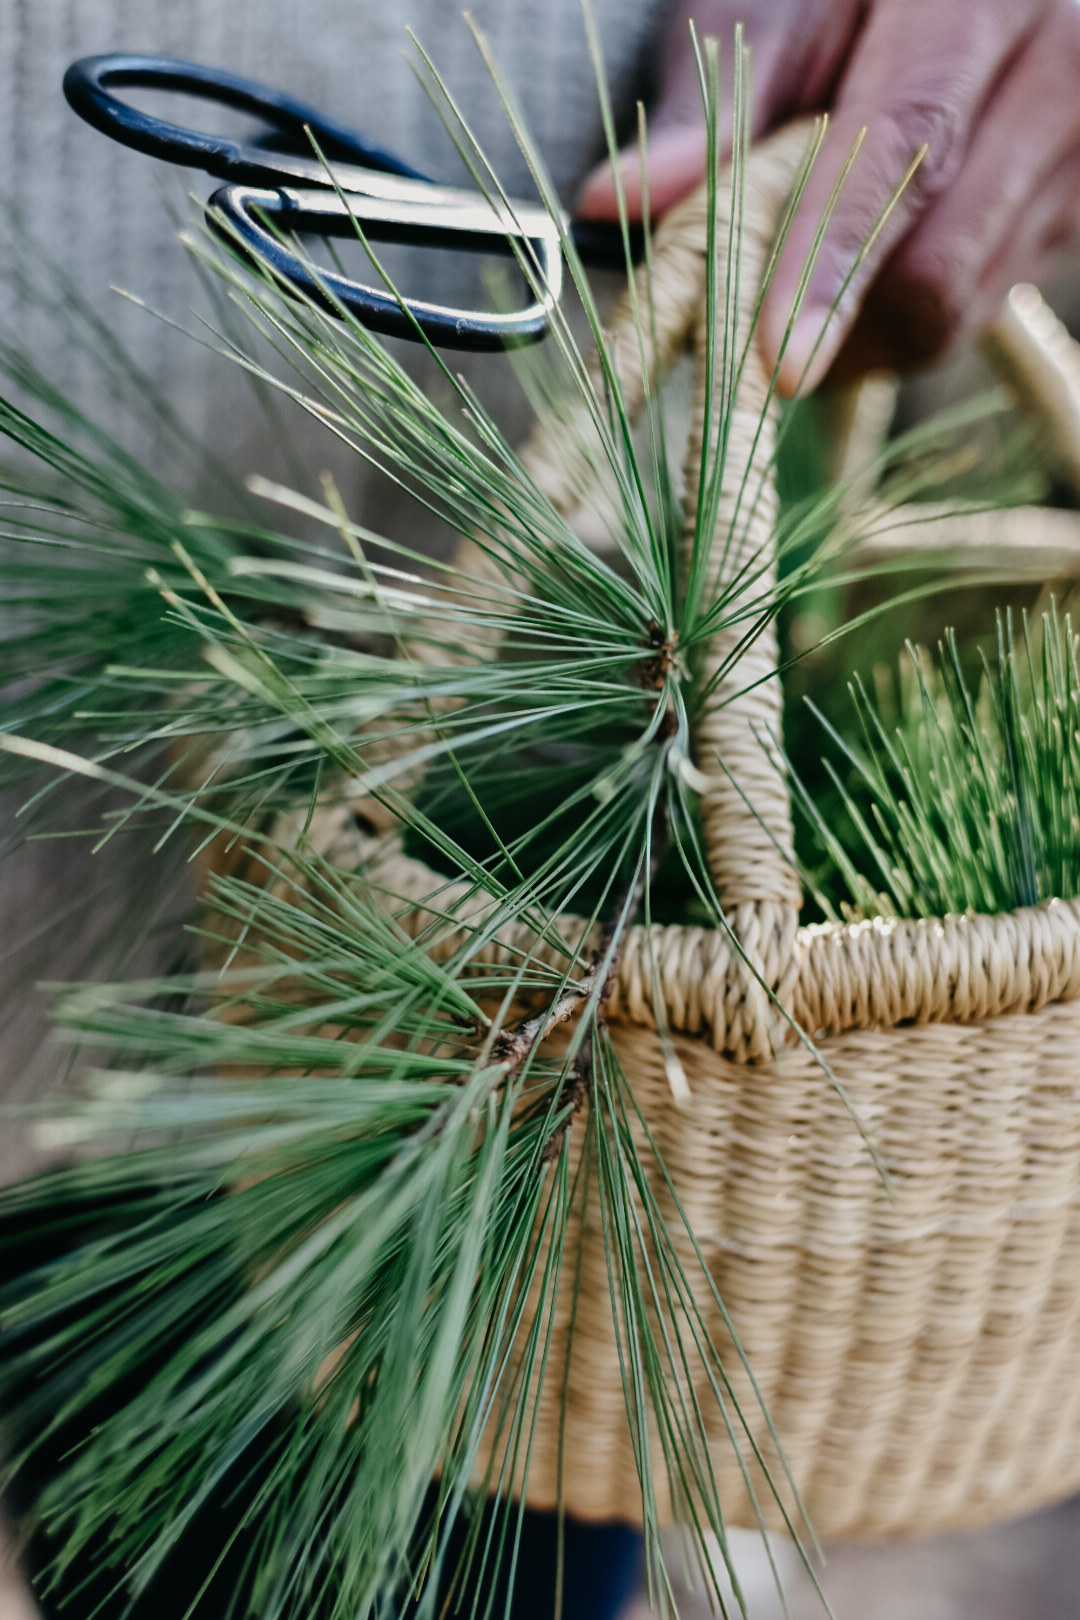 Pine needles in a whicker basket for a winter foraging adventure.